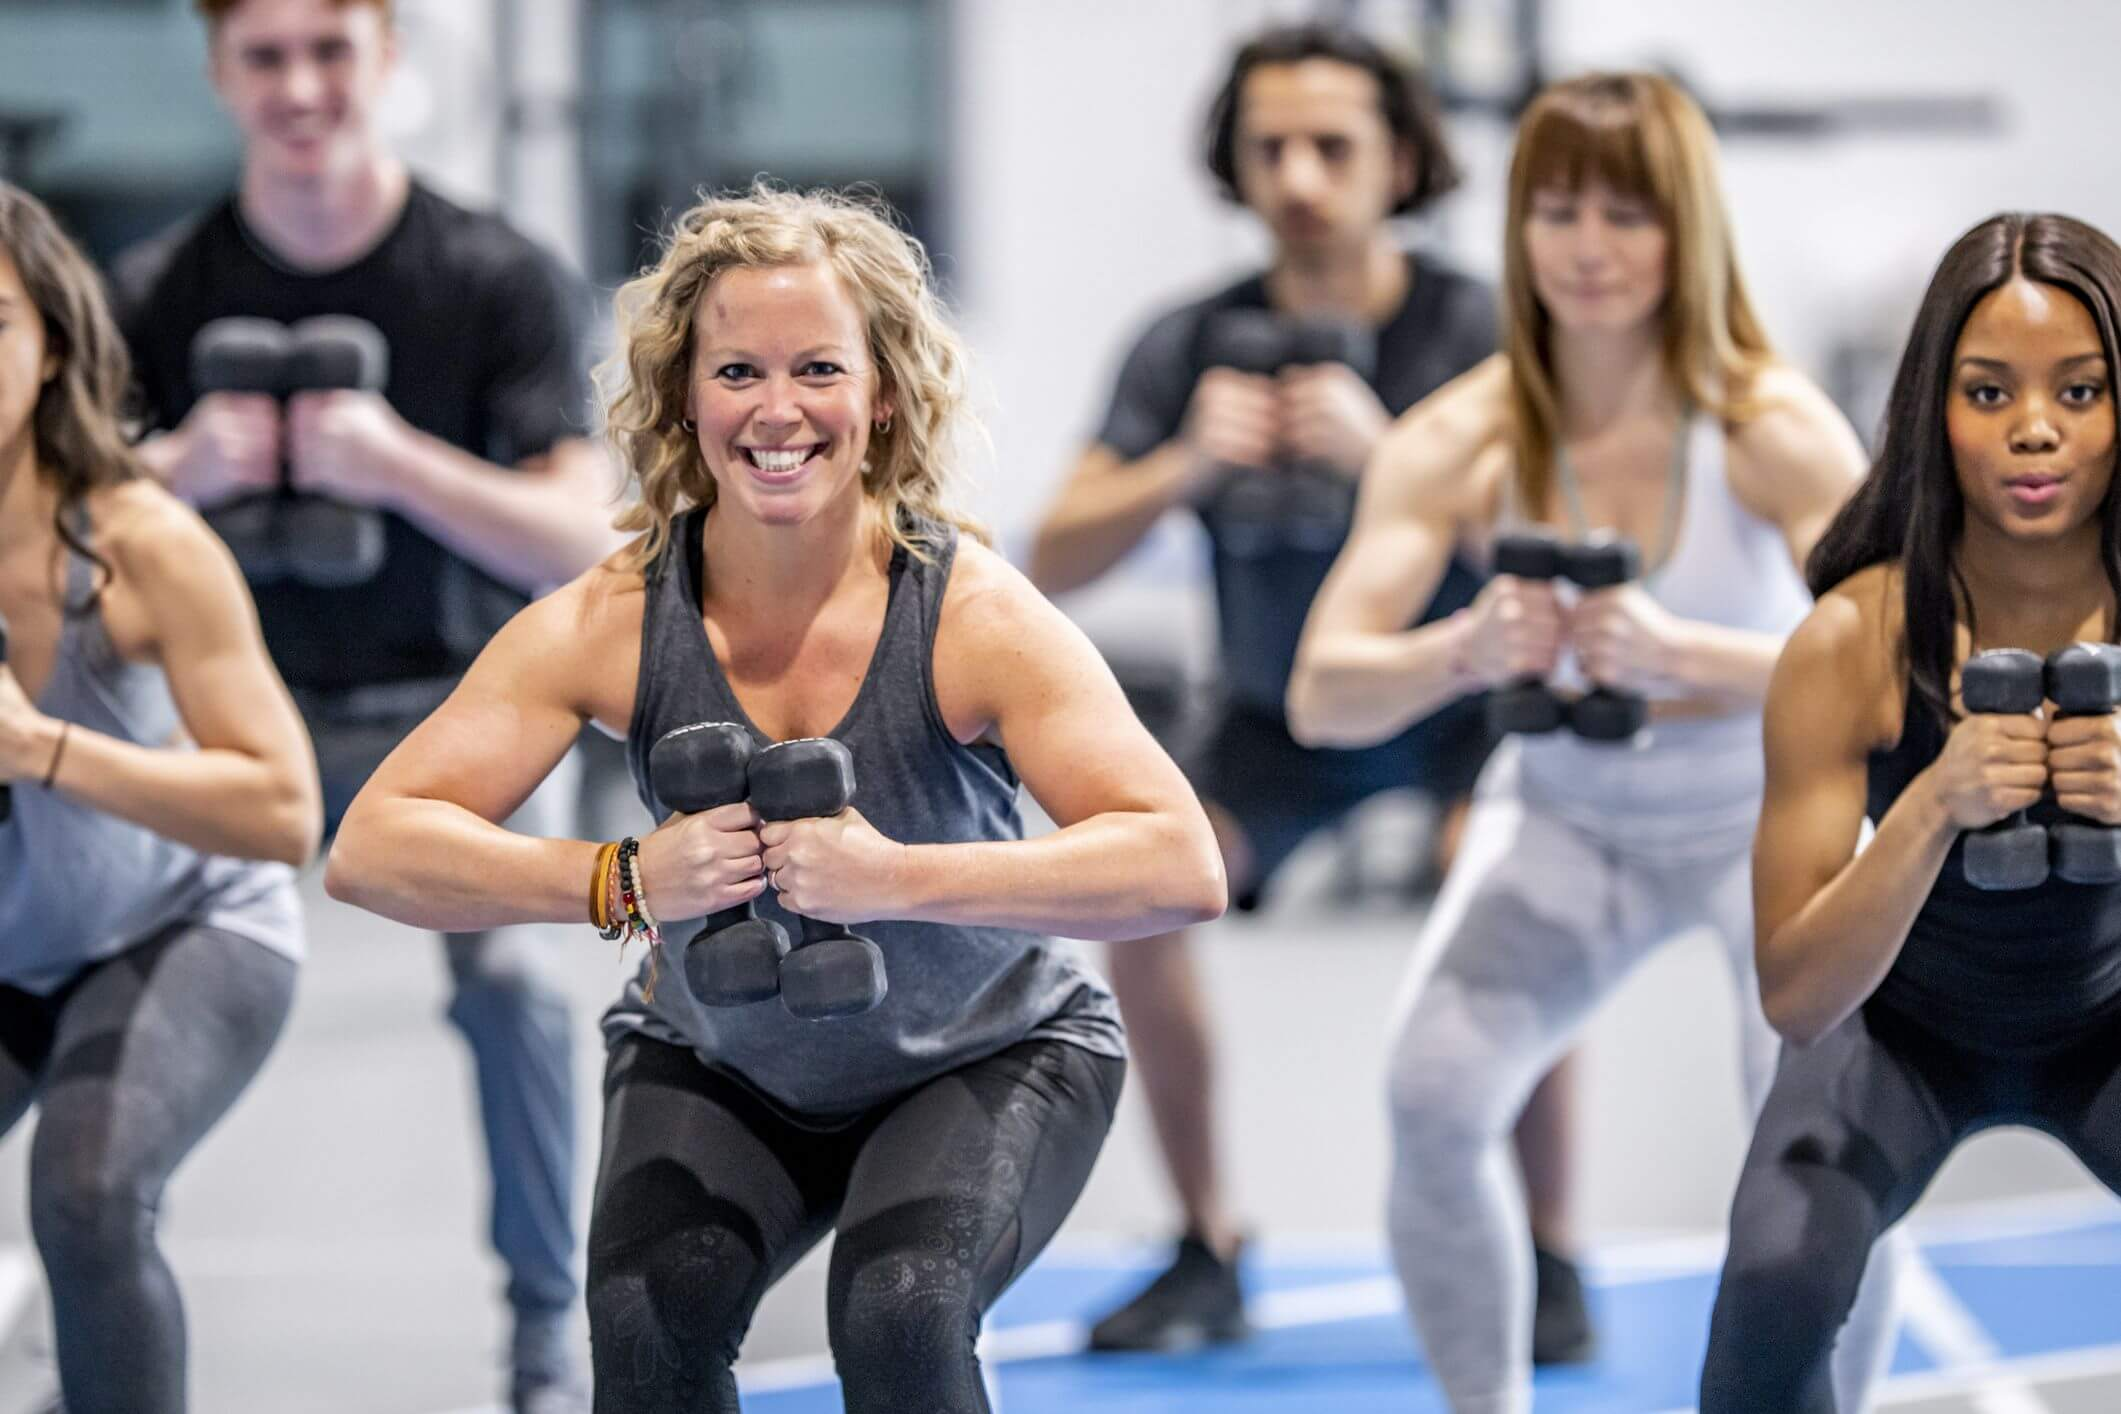 Woman Attending Group Fitness class lead by an AFAA Certified Instructor